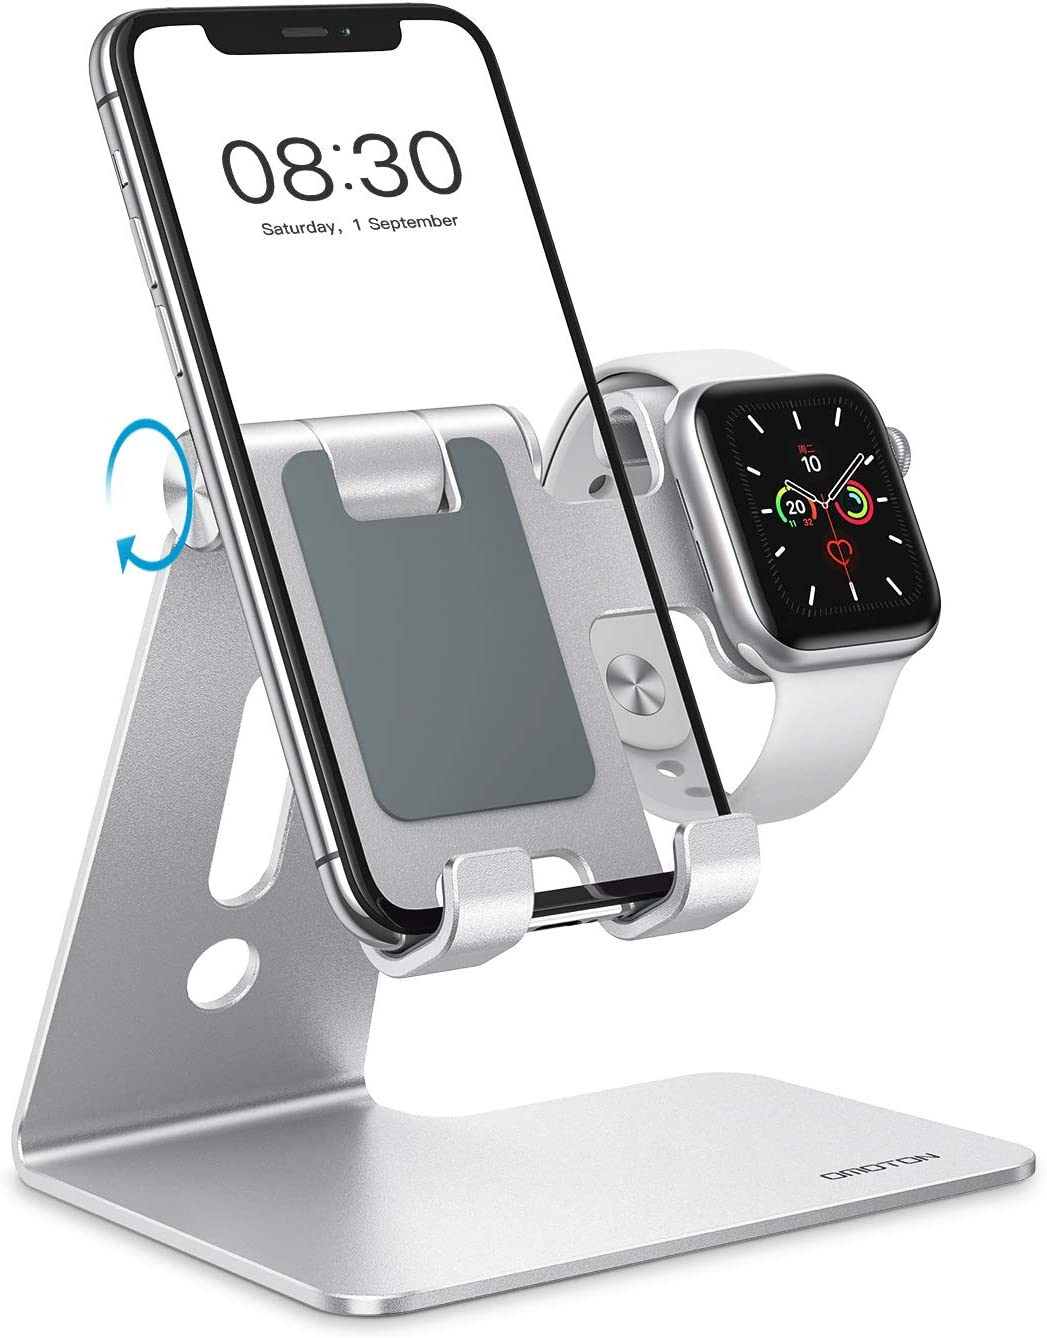 OMOTON Apple Watch Charging Stand - 2 in 1 Adjustable Aluminum Phone Stand Holder Dock for Apple Watch SE/6/5/4/3/2/1, Apple Watch Charger Stand for iPhone 11/SE 2 2020/11 Pro/Xs/Xs Max/XR, Silver